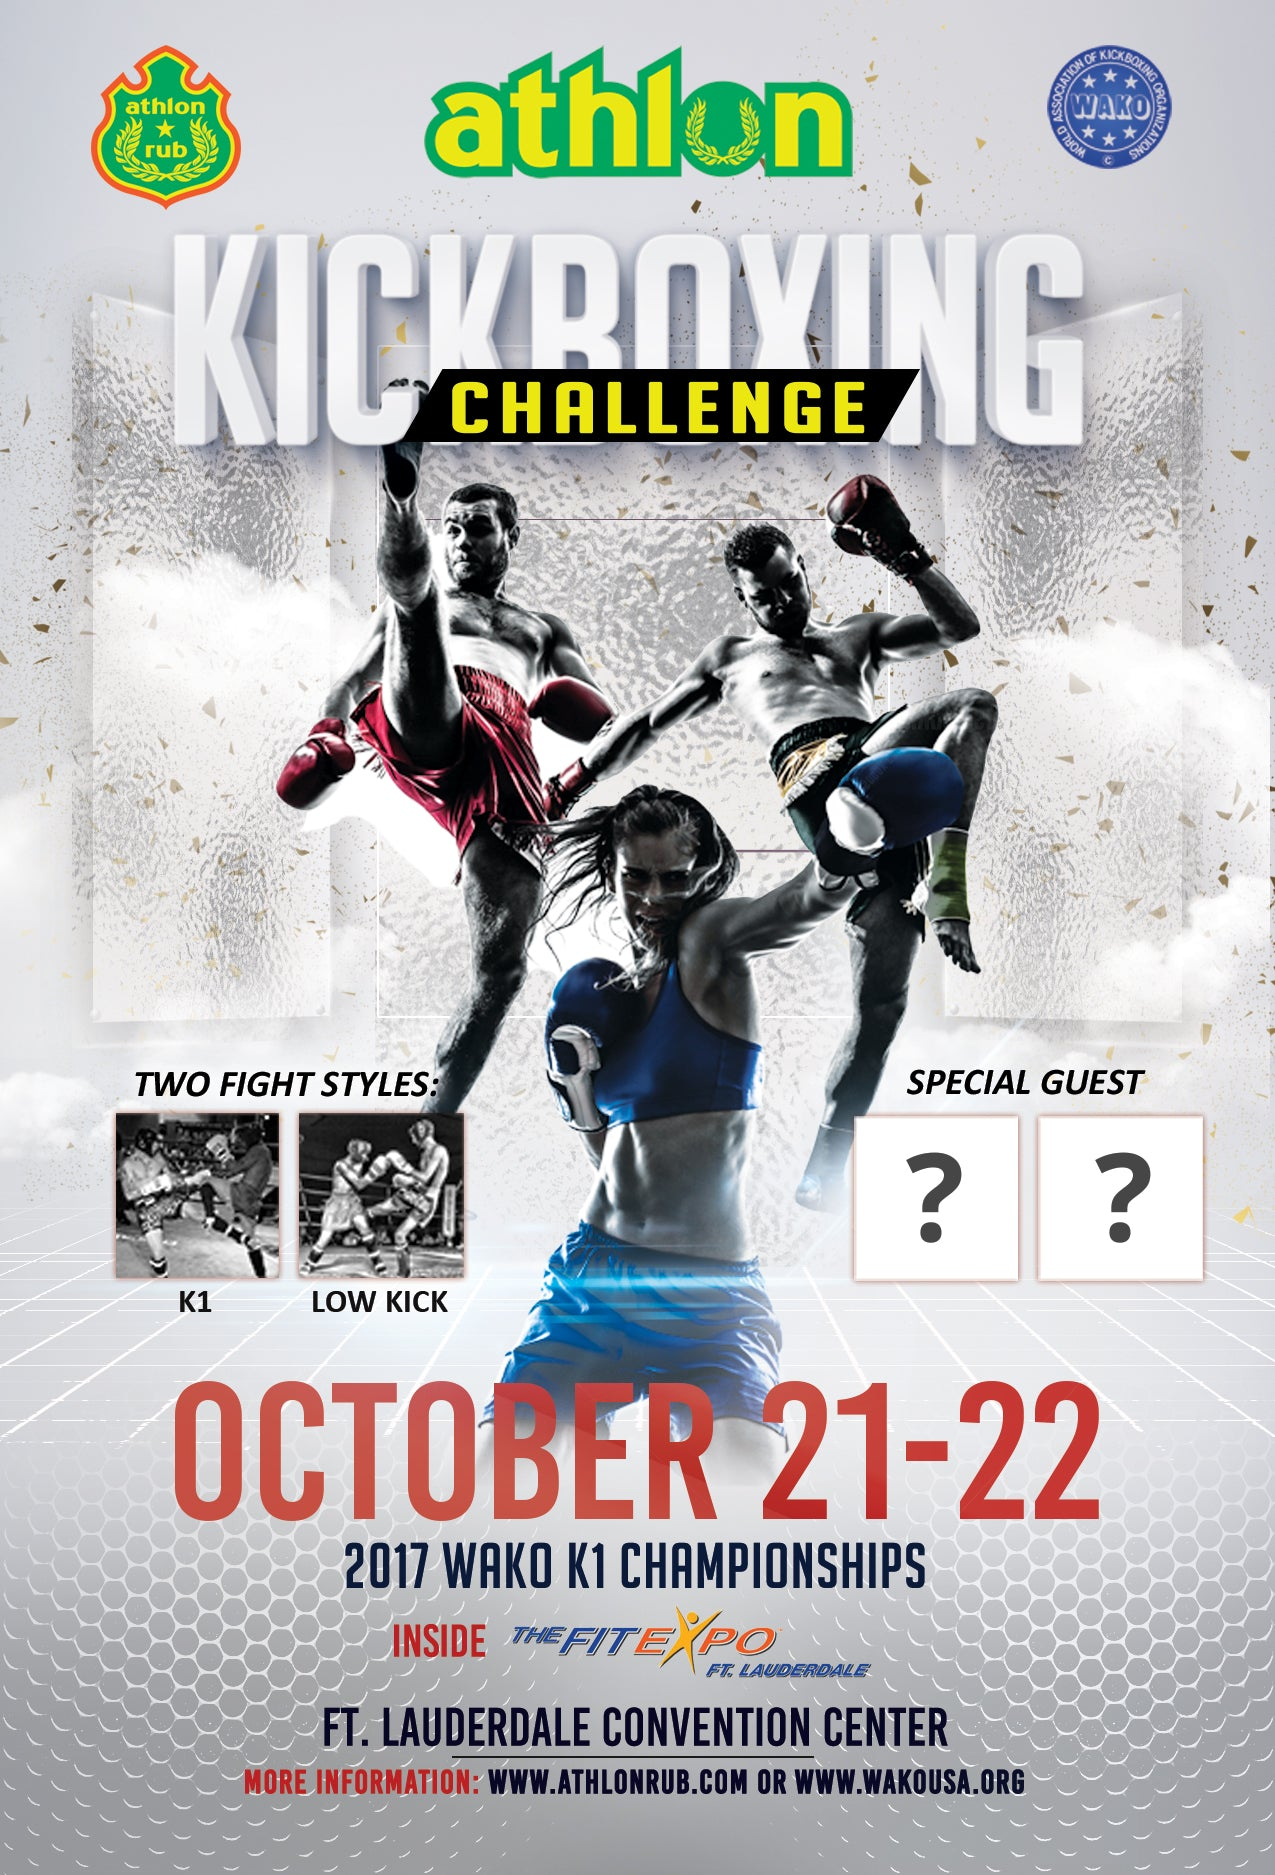 2017 Athlon Kickboxing Challenge To Take Place During TheFitExpo Ft. Lauderdale!